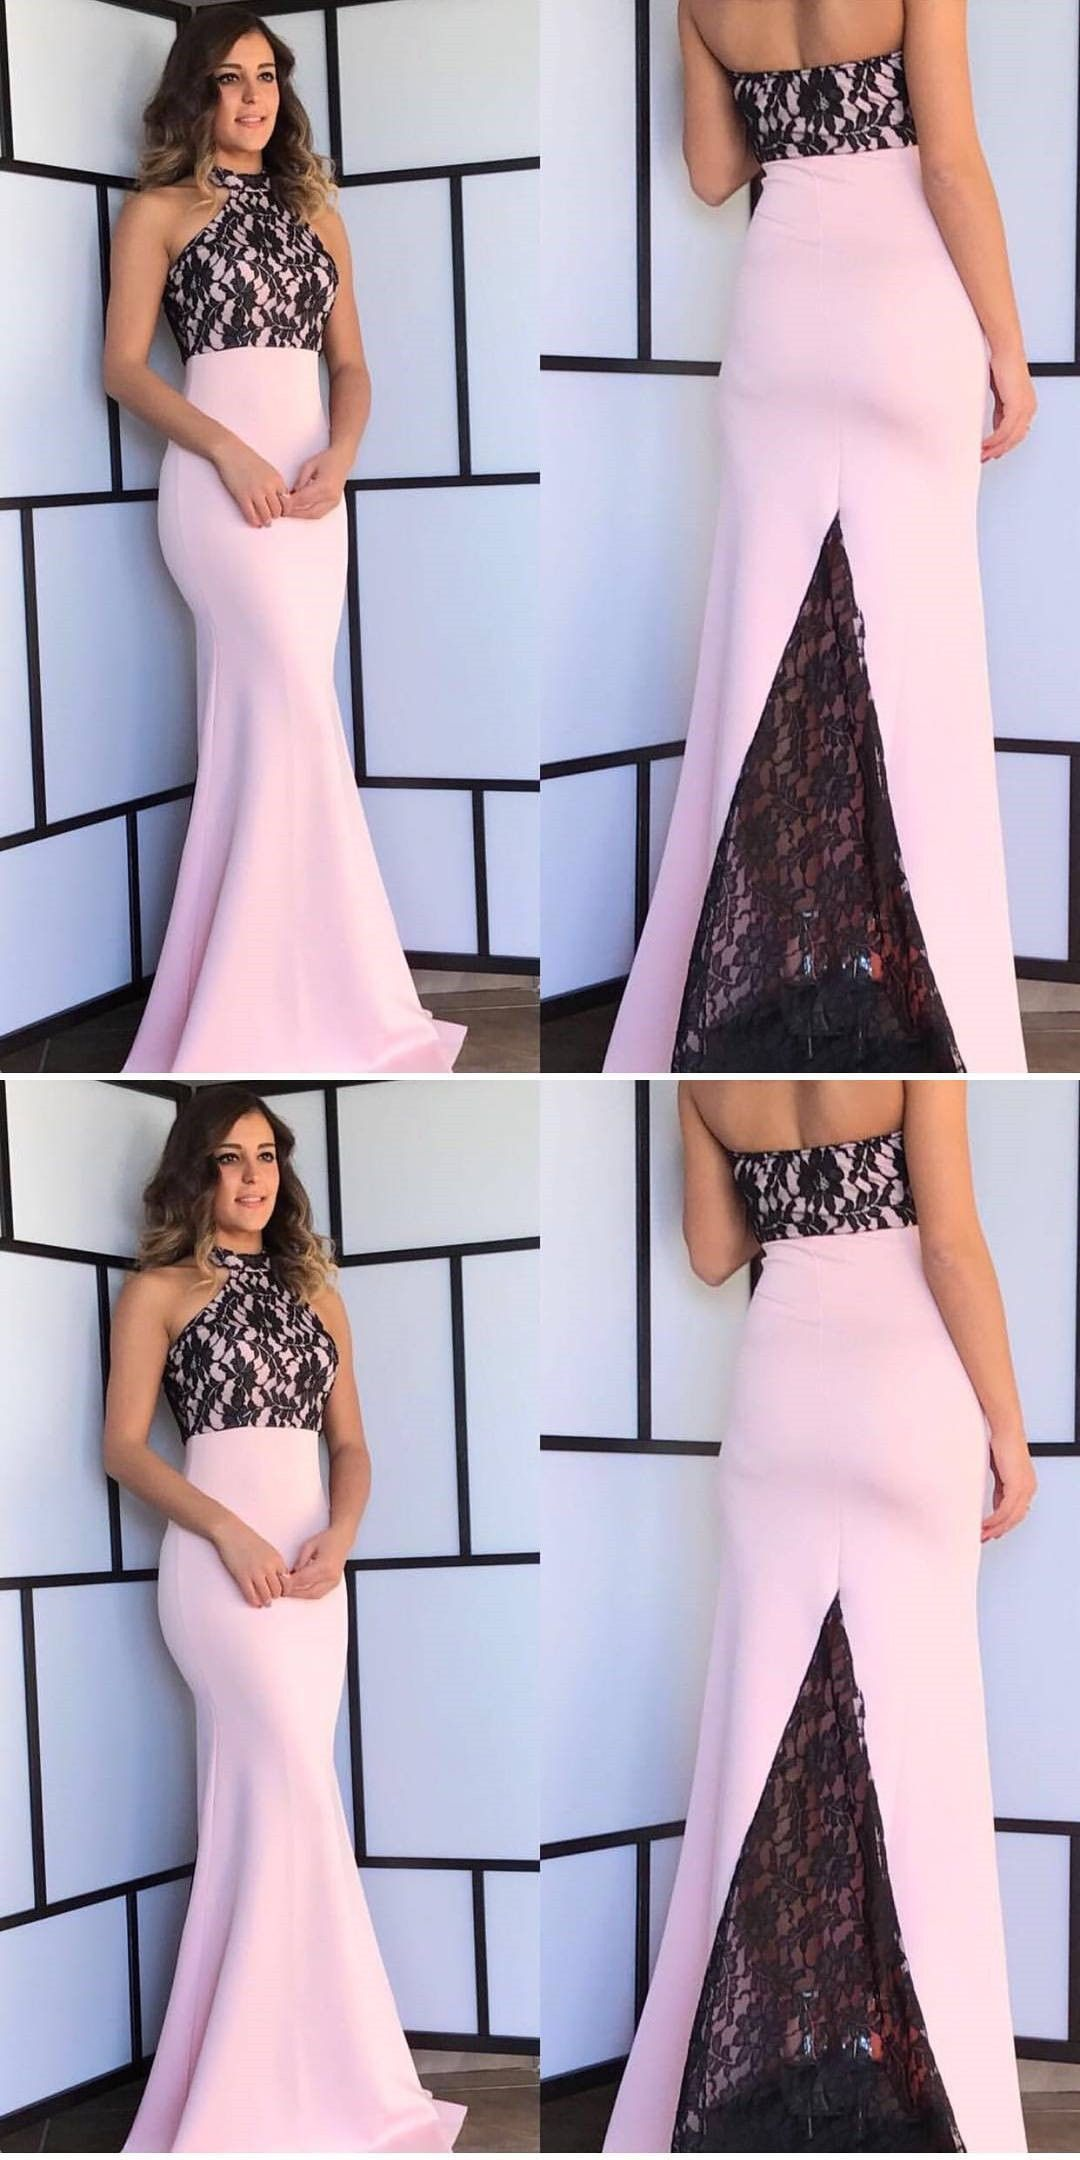 Mermaid halter pink stretch satin prom evening dress with lace